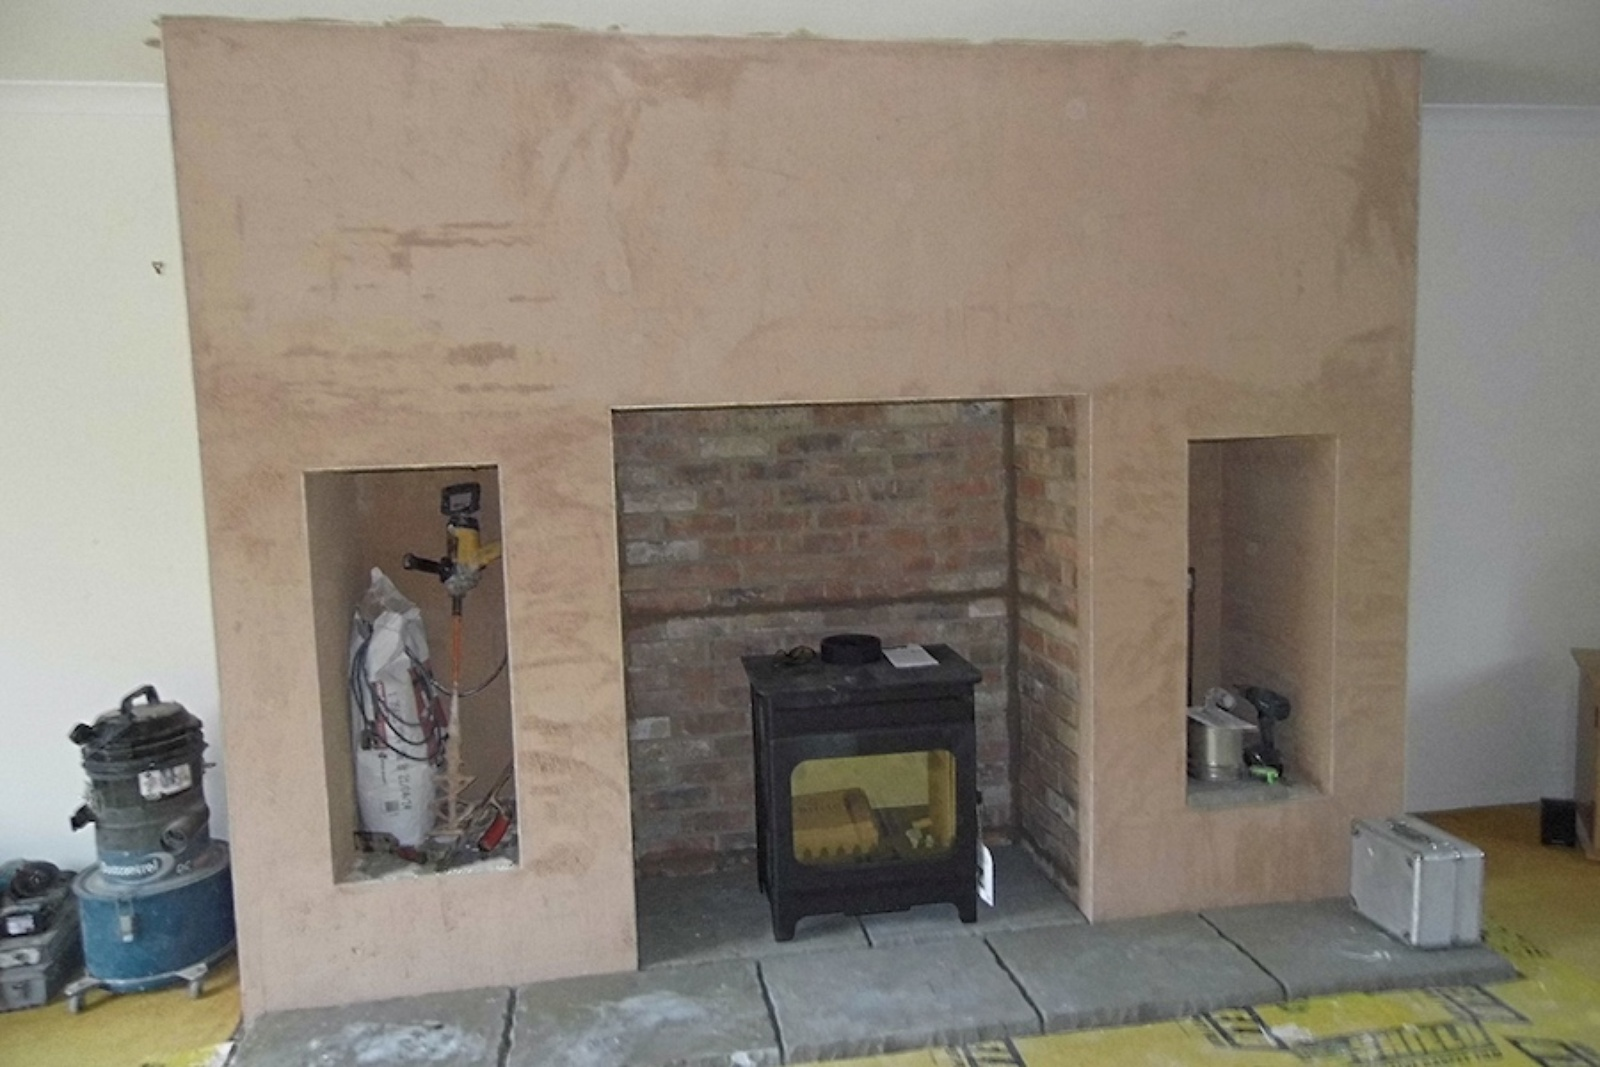 A new flagstone hearth has been laid and the stove placed ready for connecting to the lined chimney.